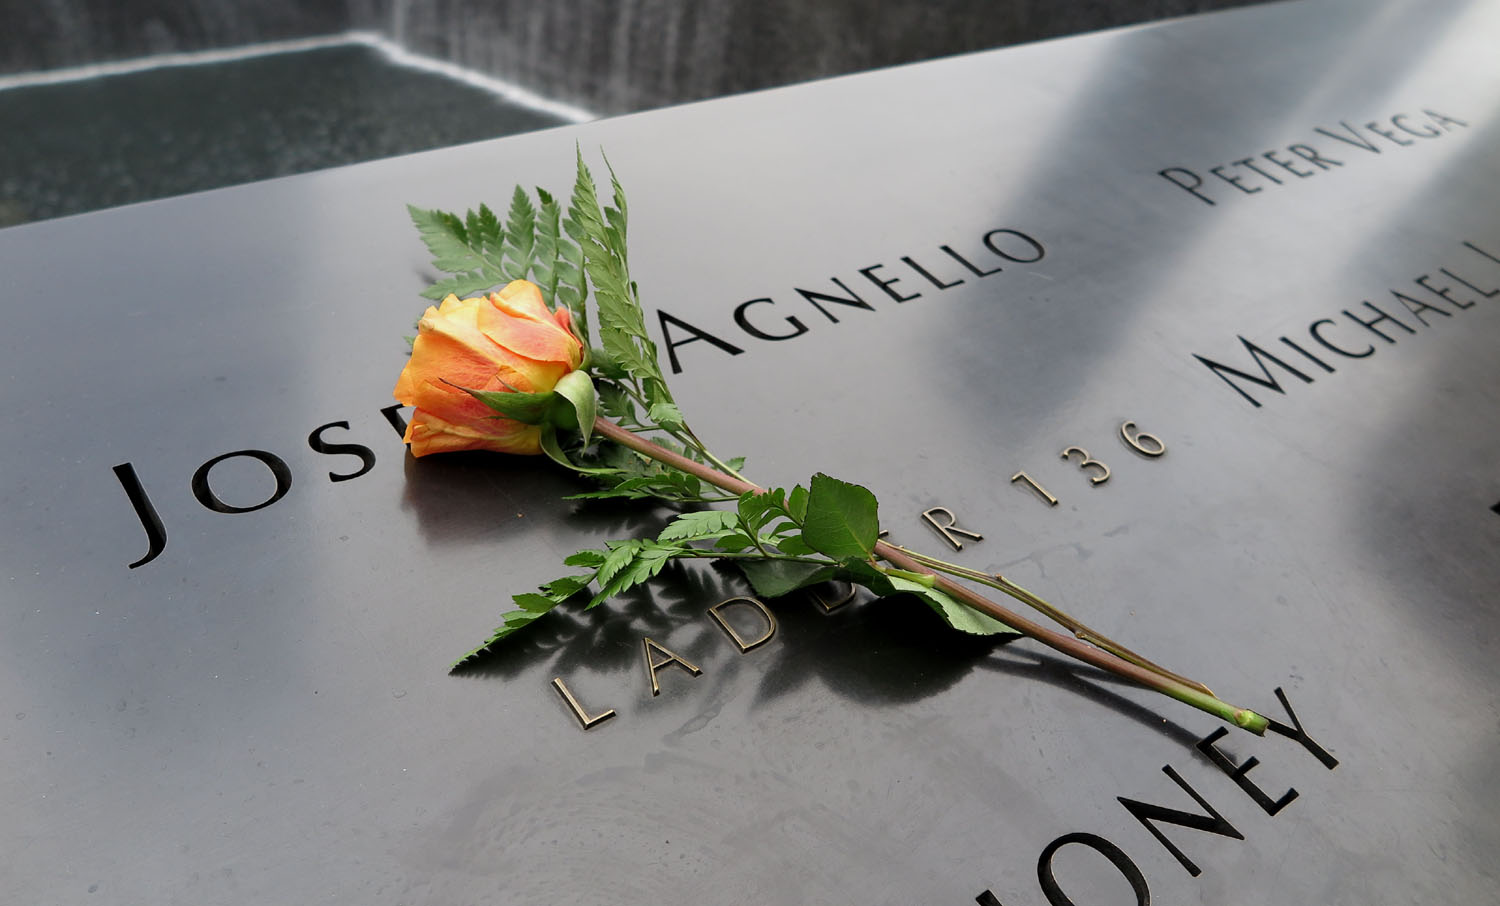 New-York-City-9-11-Memorial